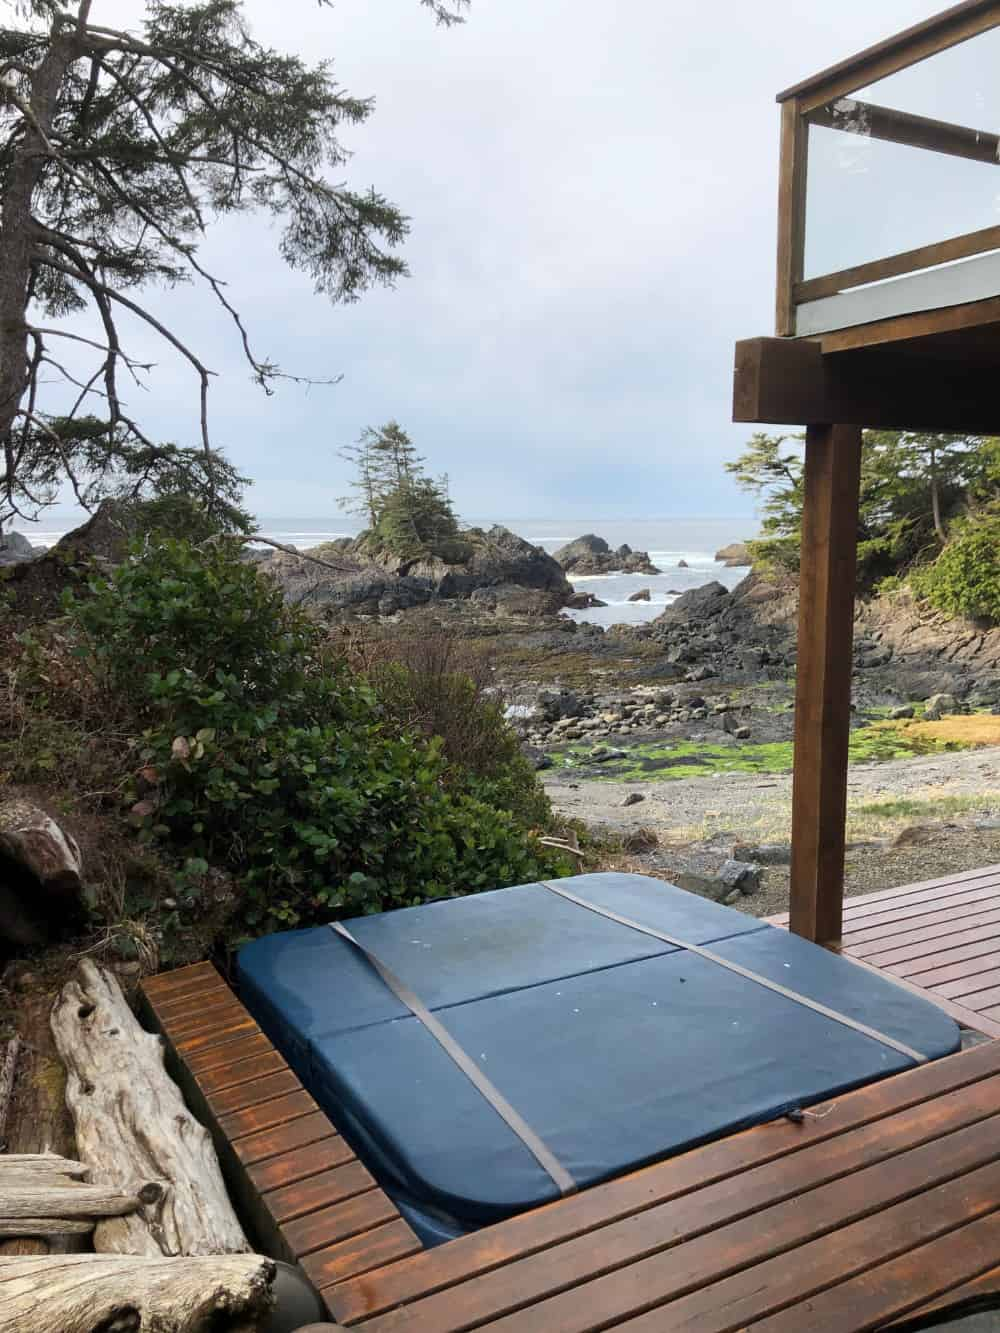 The hot tub is steps from the veranda. We really enjoyed afternoons warming up after walks on the beach.